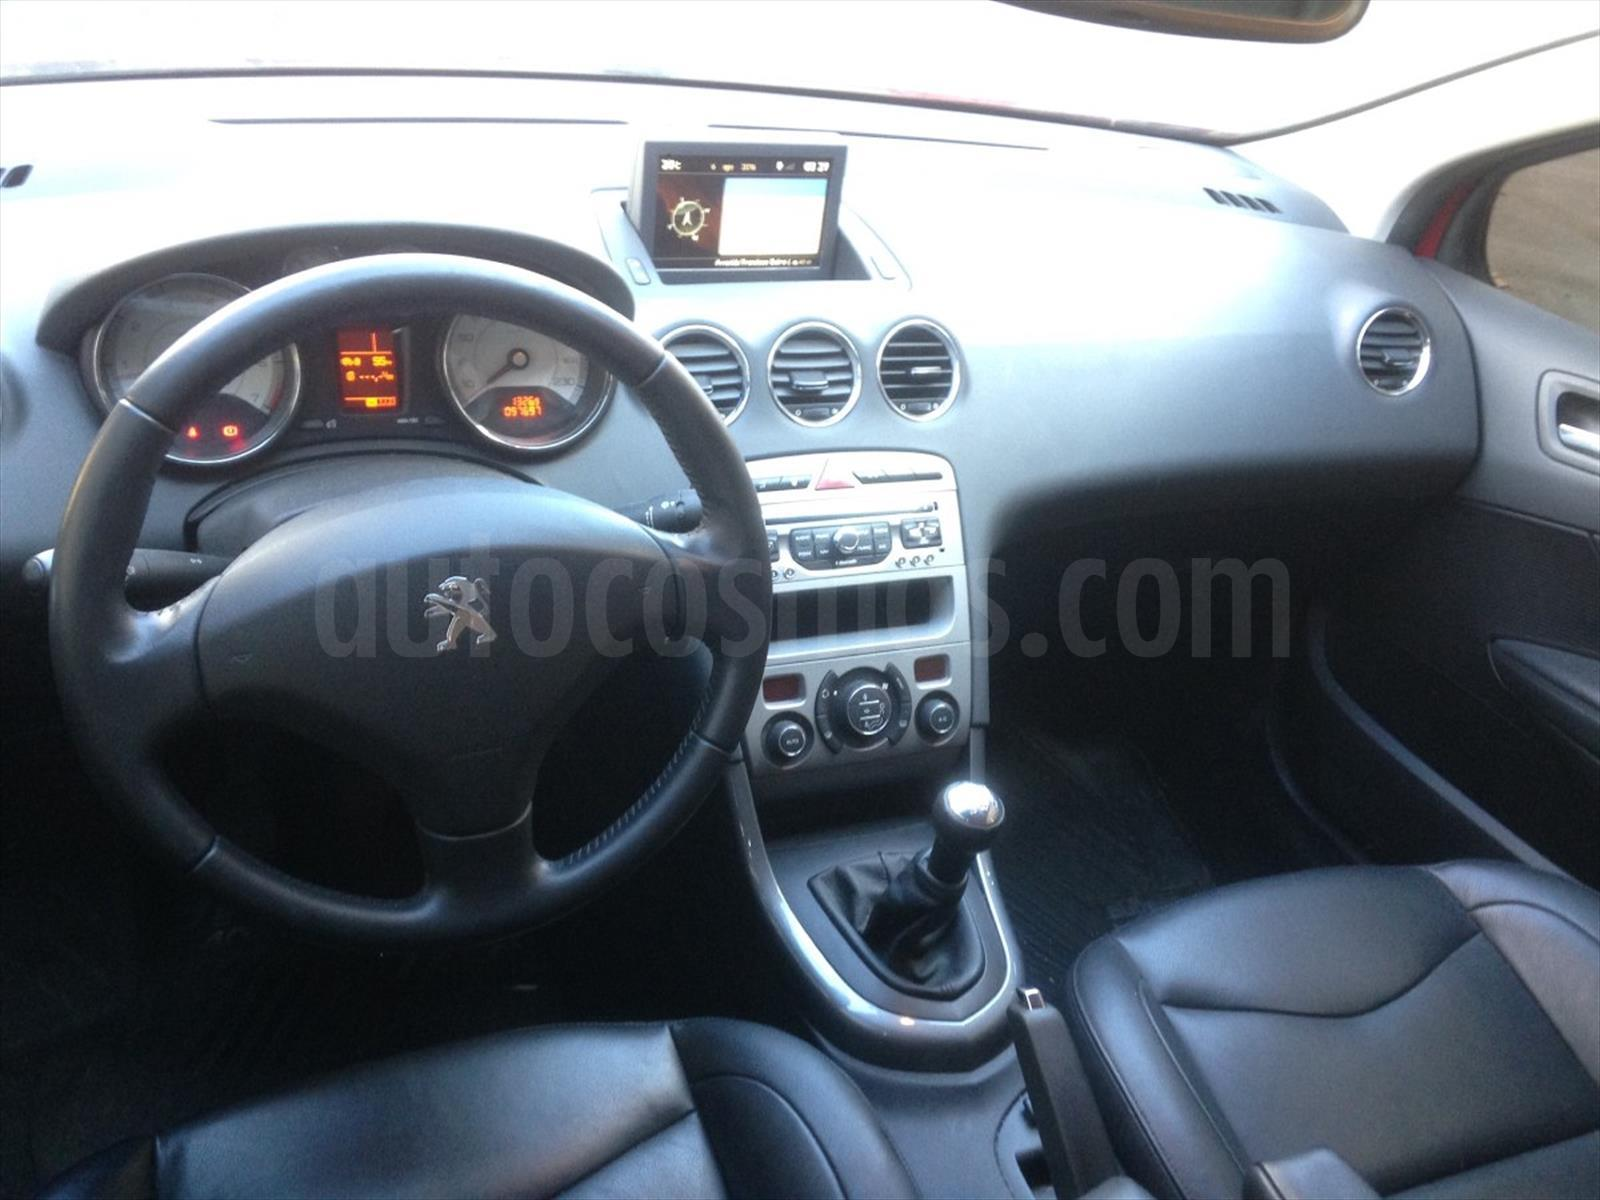 Venta autos usado capital federal peugeot 408 allure nav for Interior 408 allure